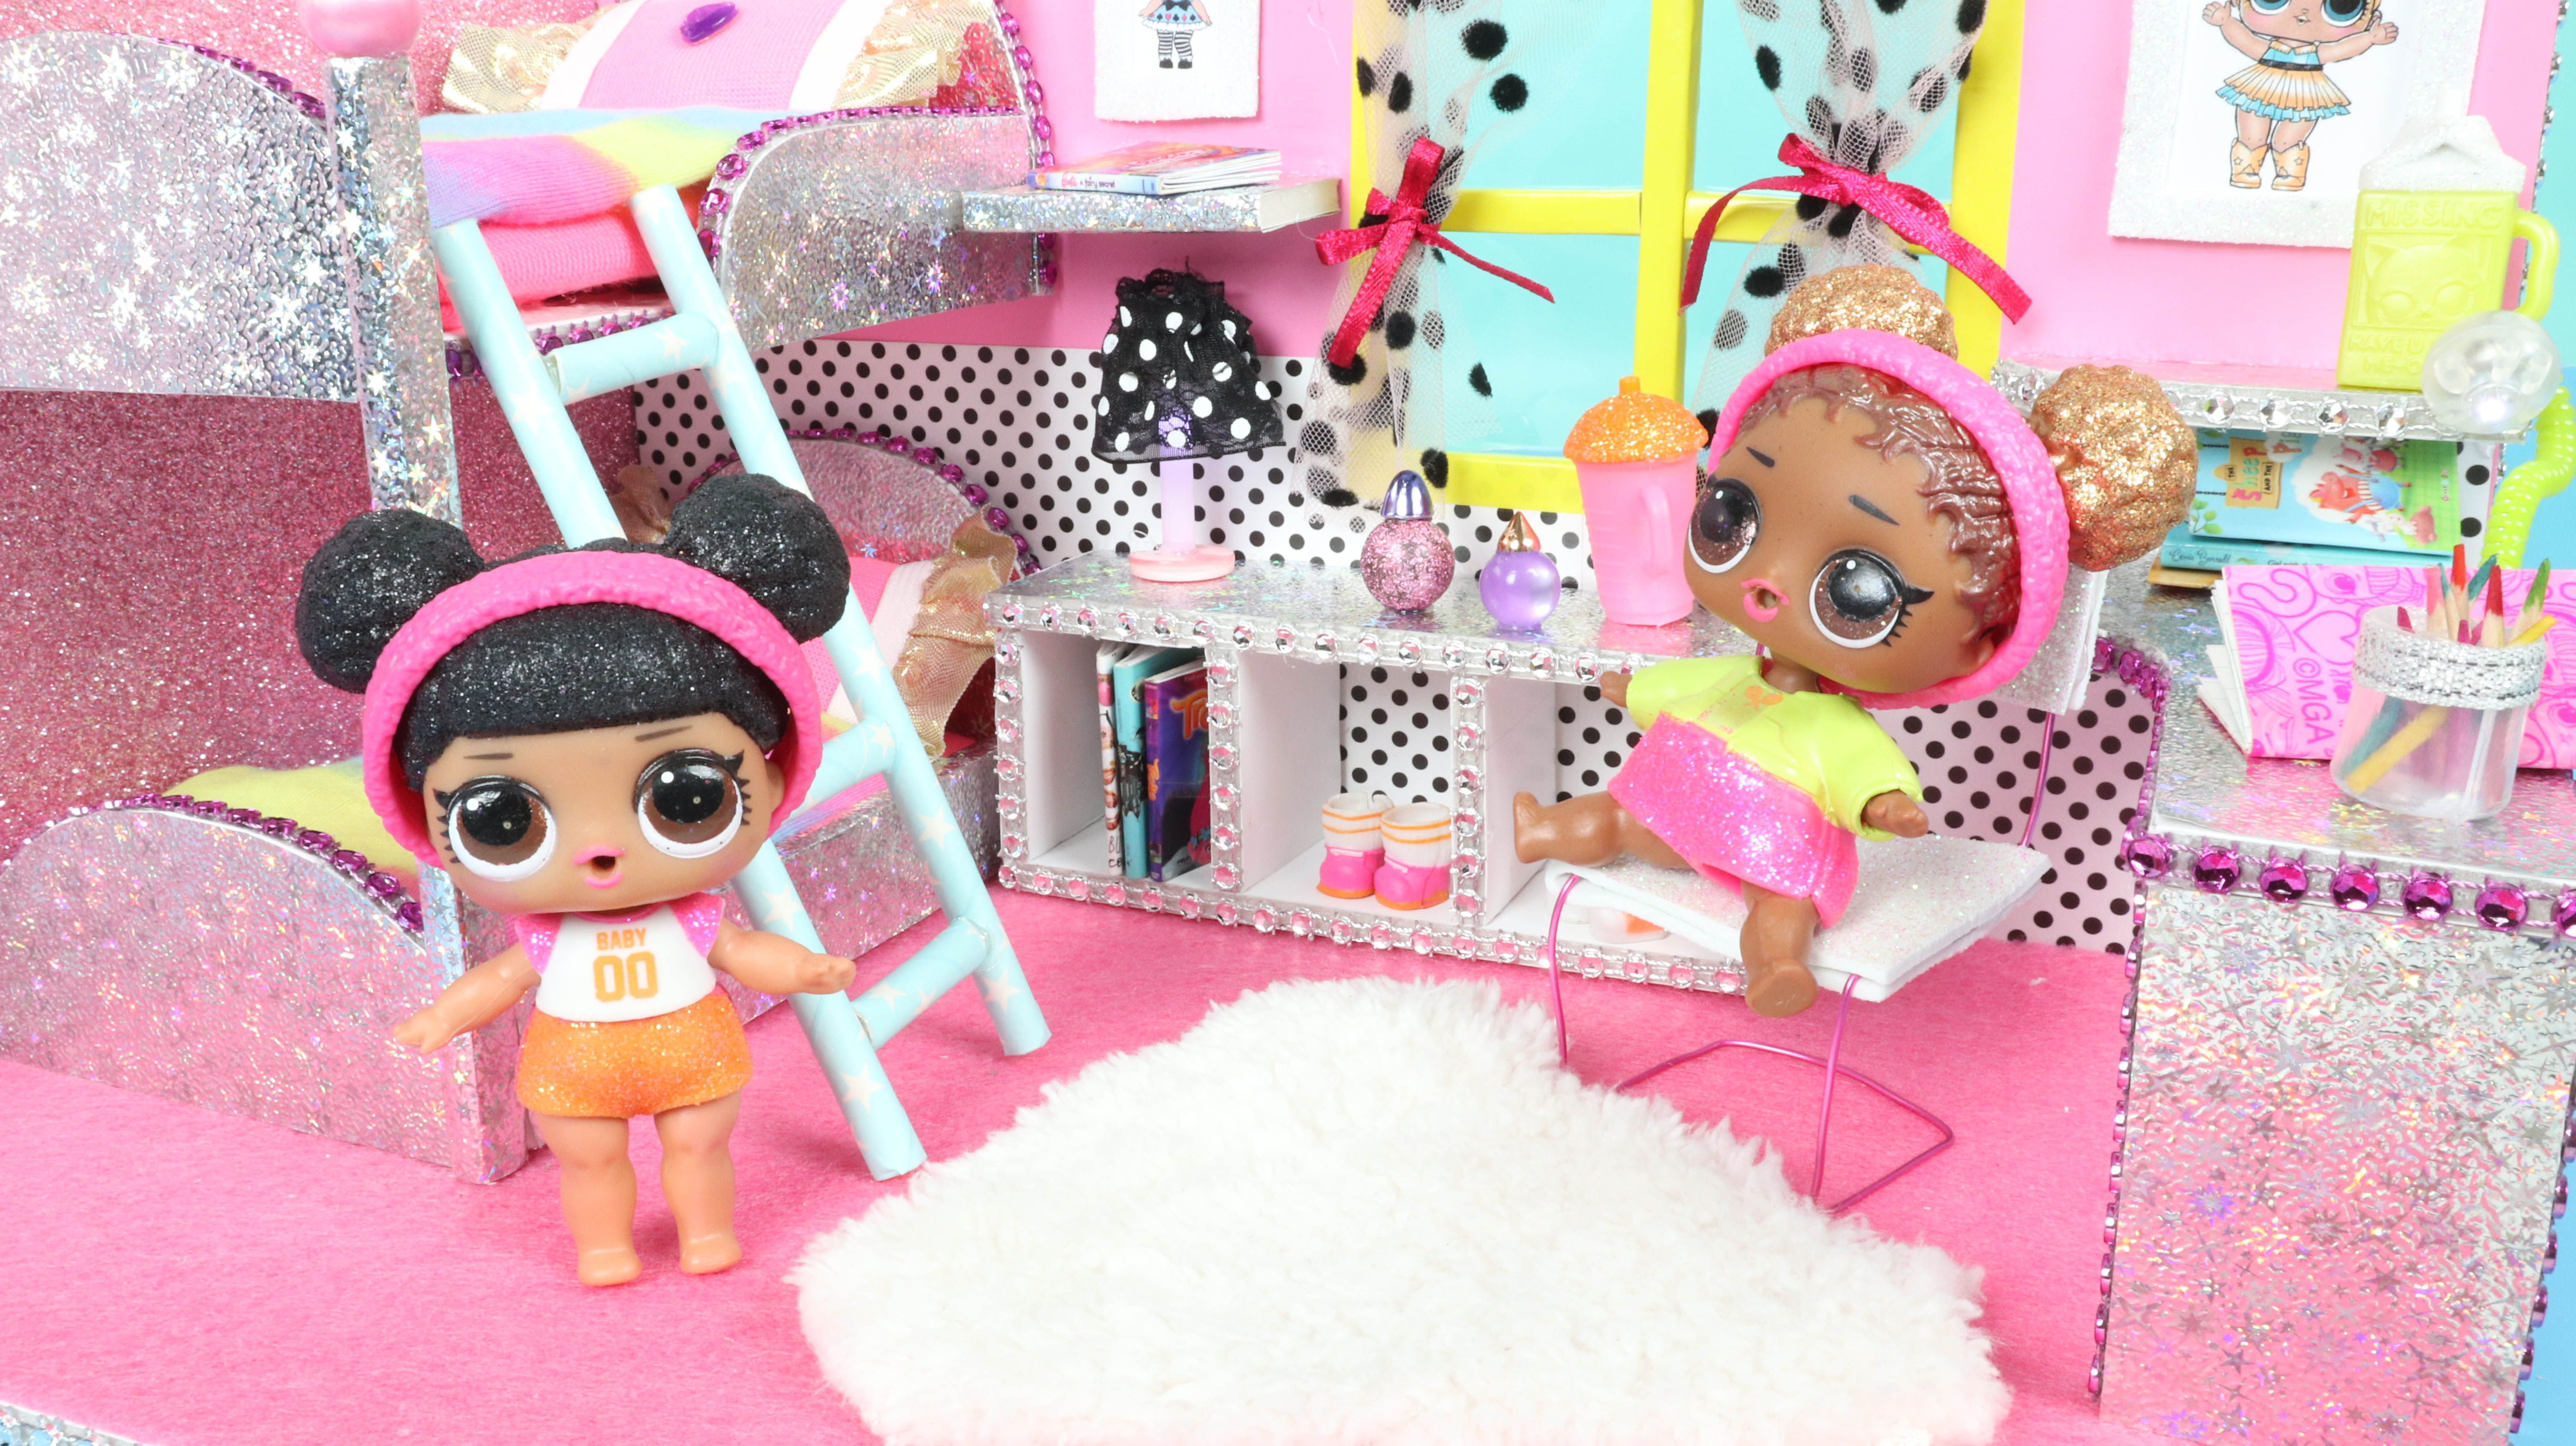 Diy Miniature Dollhouse Room Lol Room Decor How To Make Hacks And Crafts For Lol Surprise Toys In 2021 Dollhouse Miniatures Diy Miniature Doll House